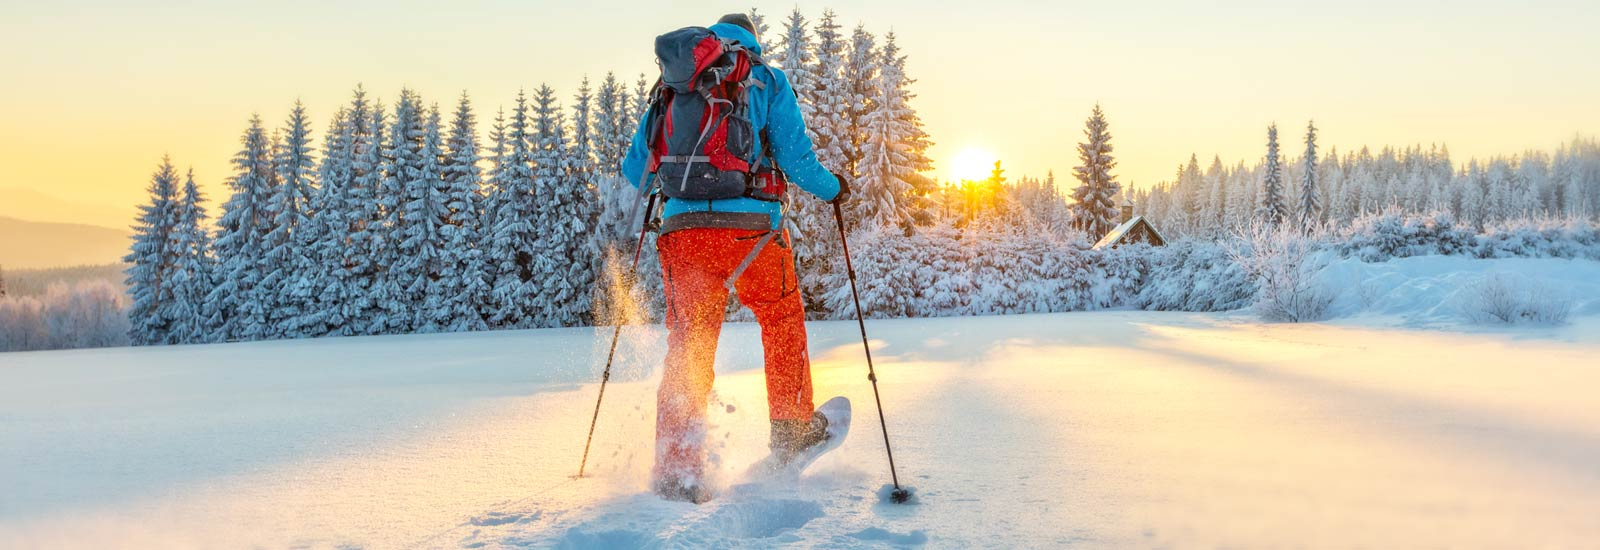 Cross Country Ski Sale Akers Ski Com >> Snow Sports Wisconsin Bed And Breakfast Association